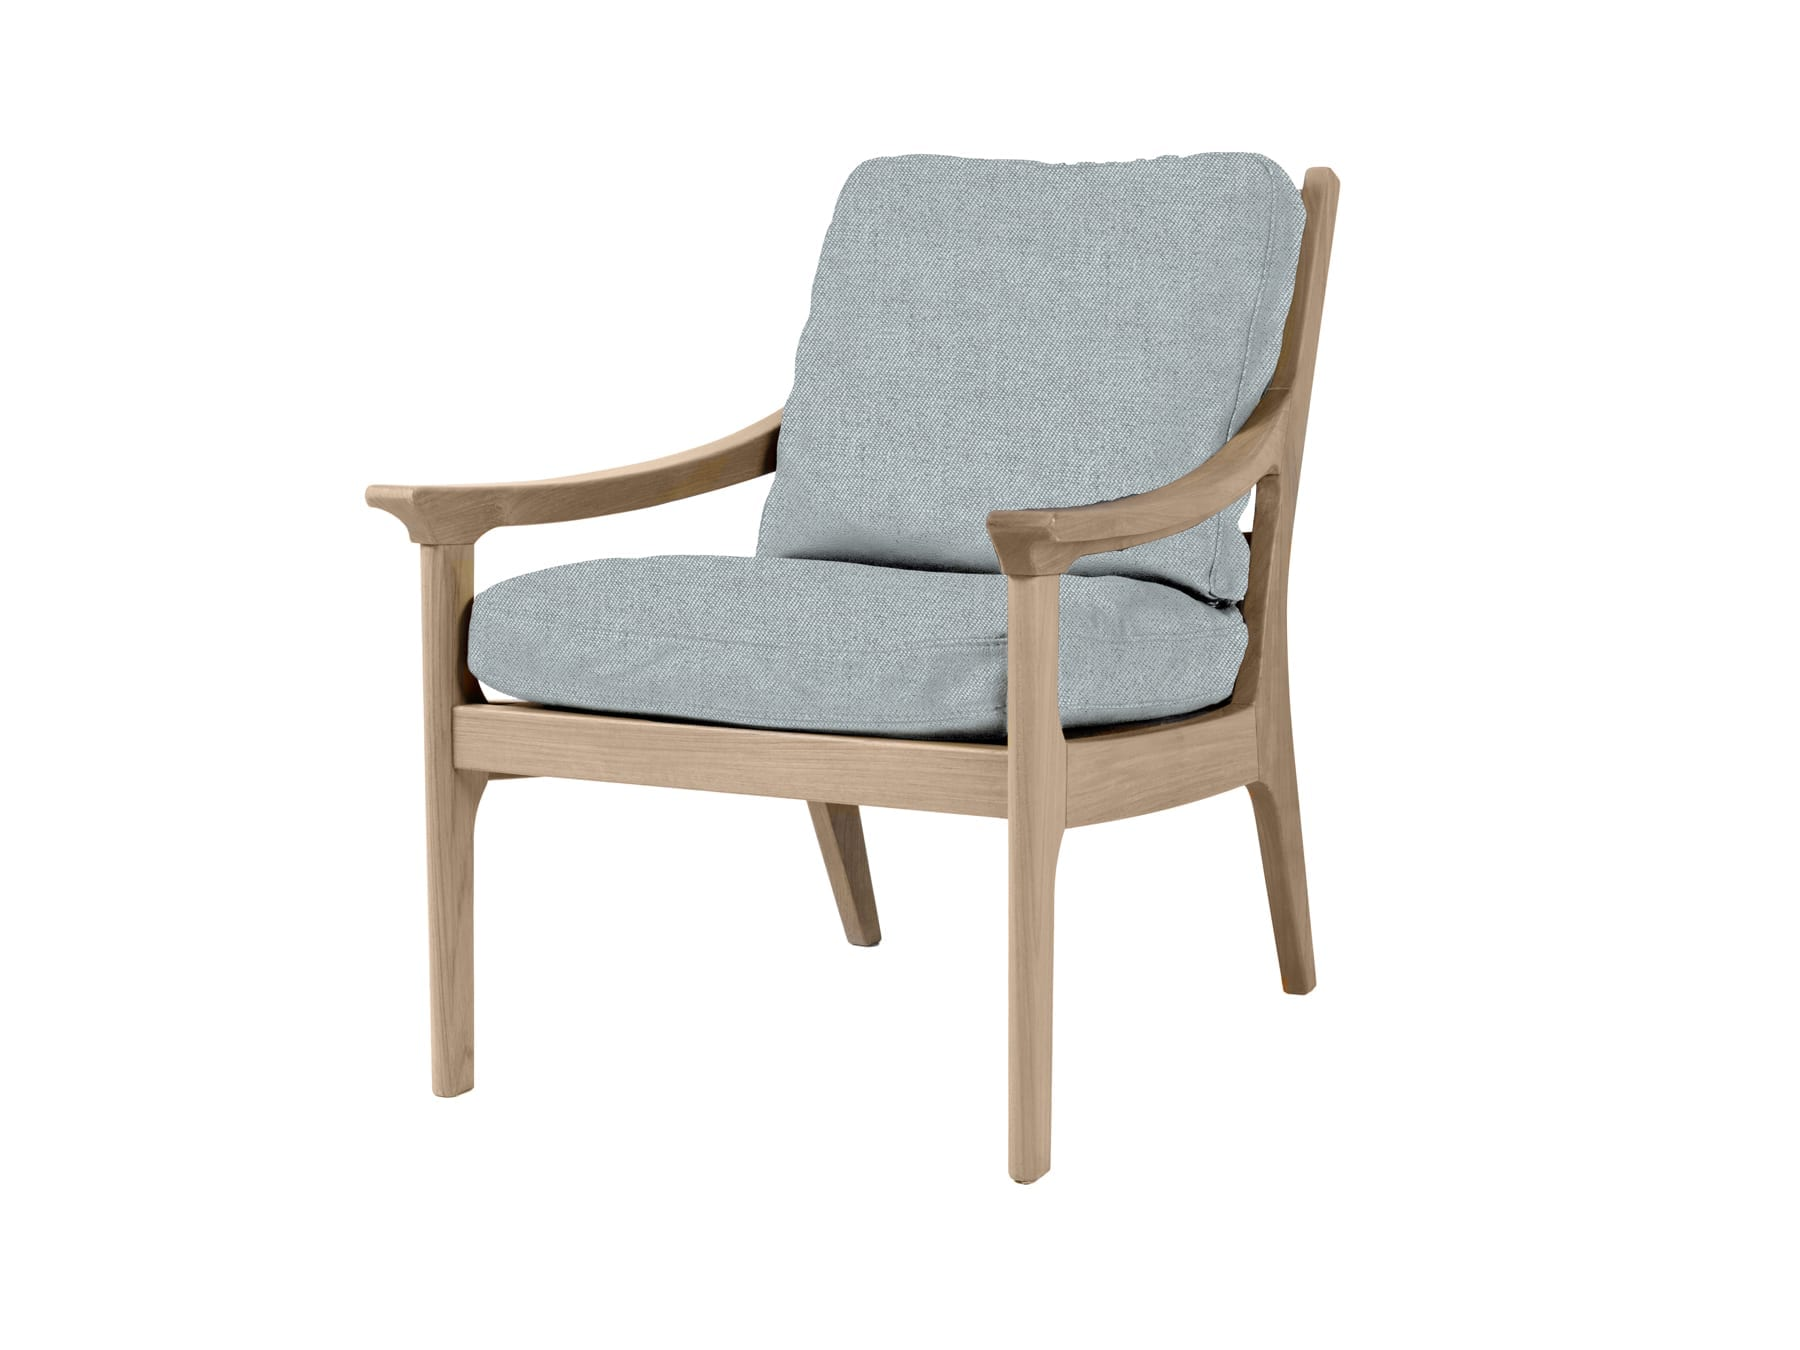 Furninova Revir Armchair Nancy Soft Blue avialble at McKenzie & Willis